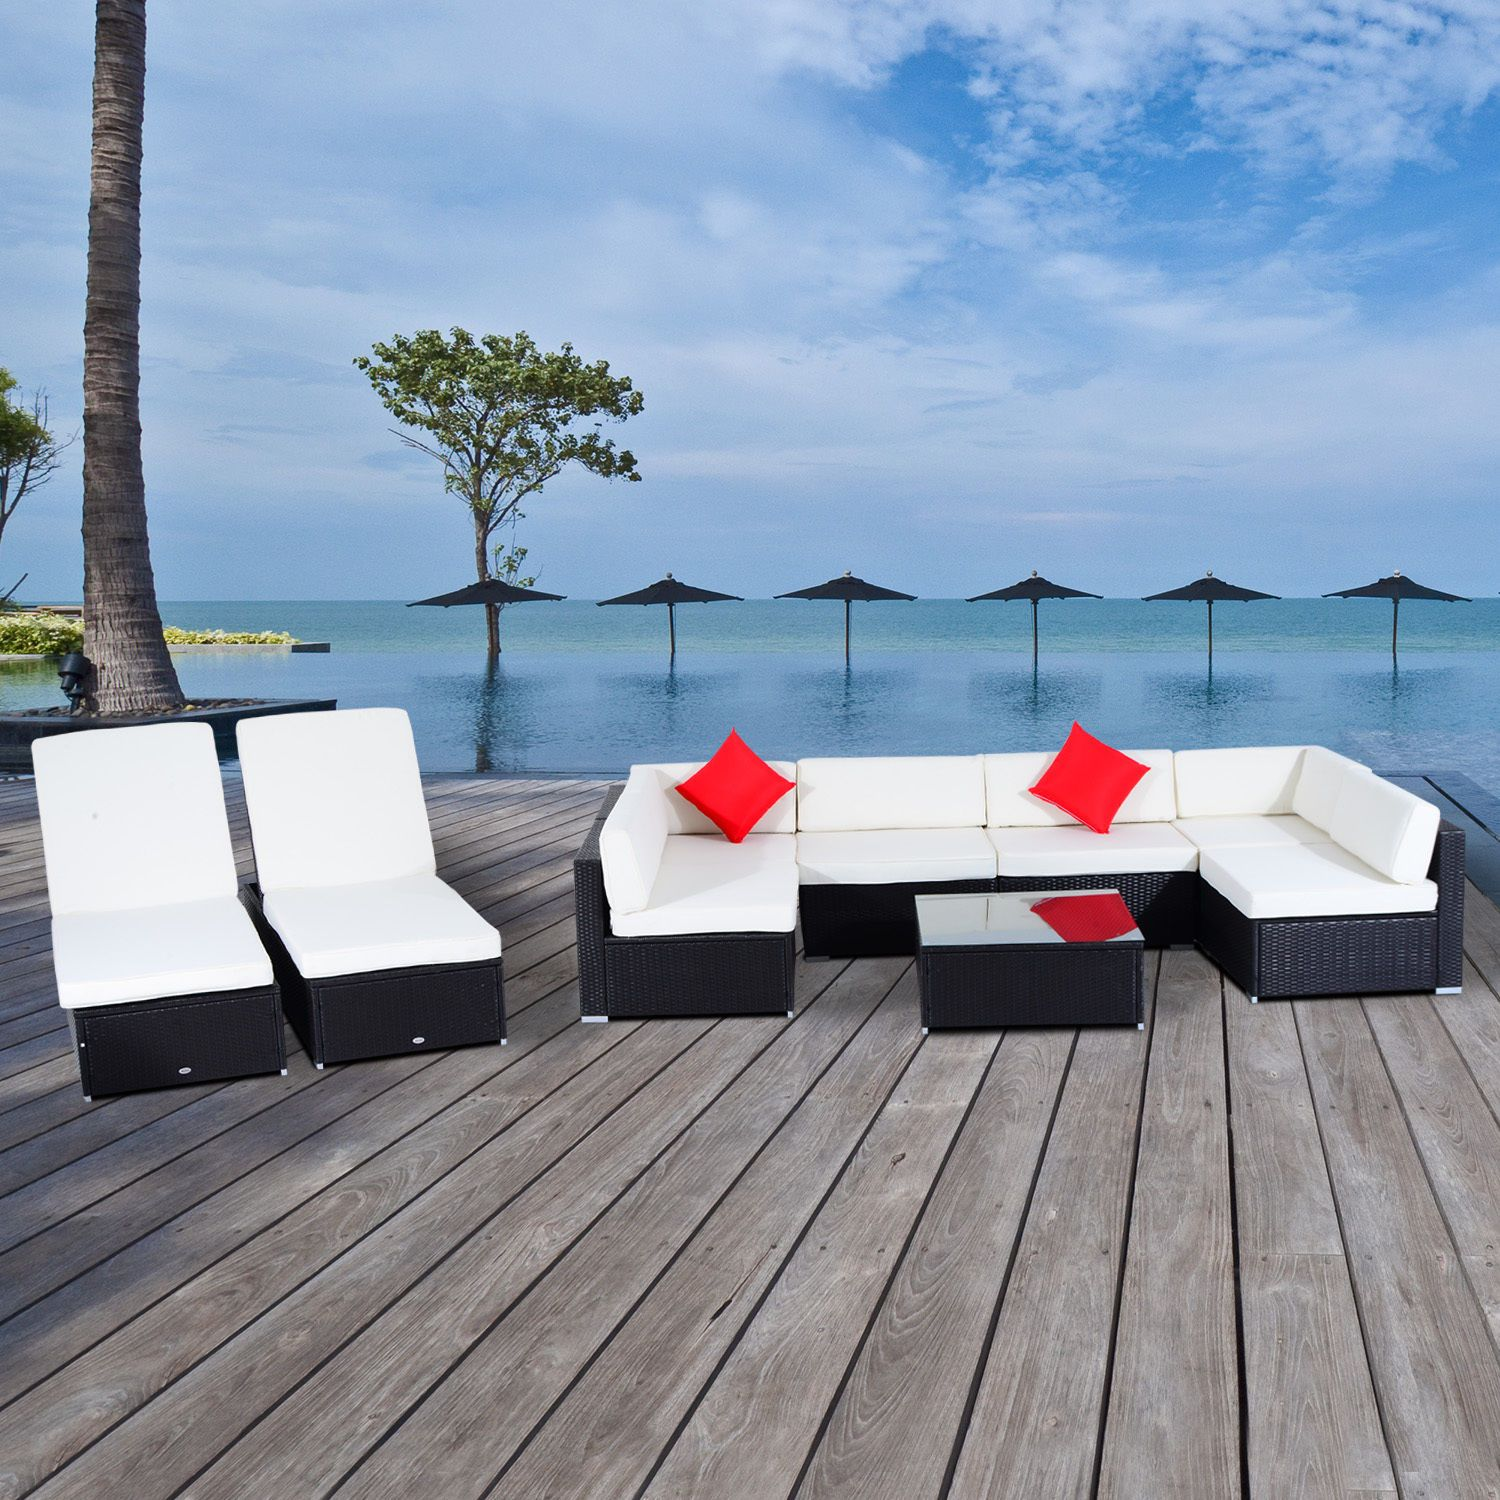 Outsunny 9 Piece Outdoor Rattan Wicker Sofa Sectional Patio Furniture Lounge Set